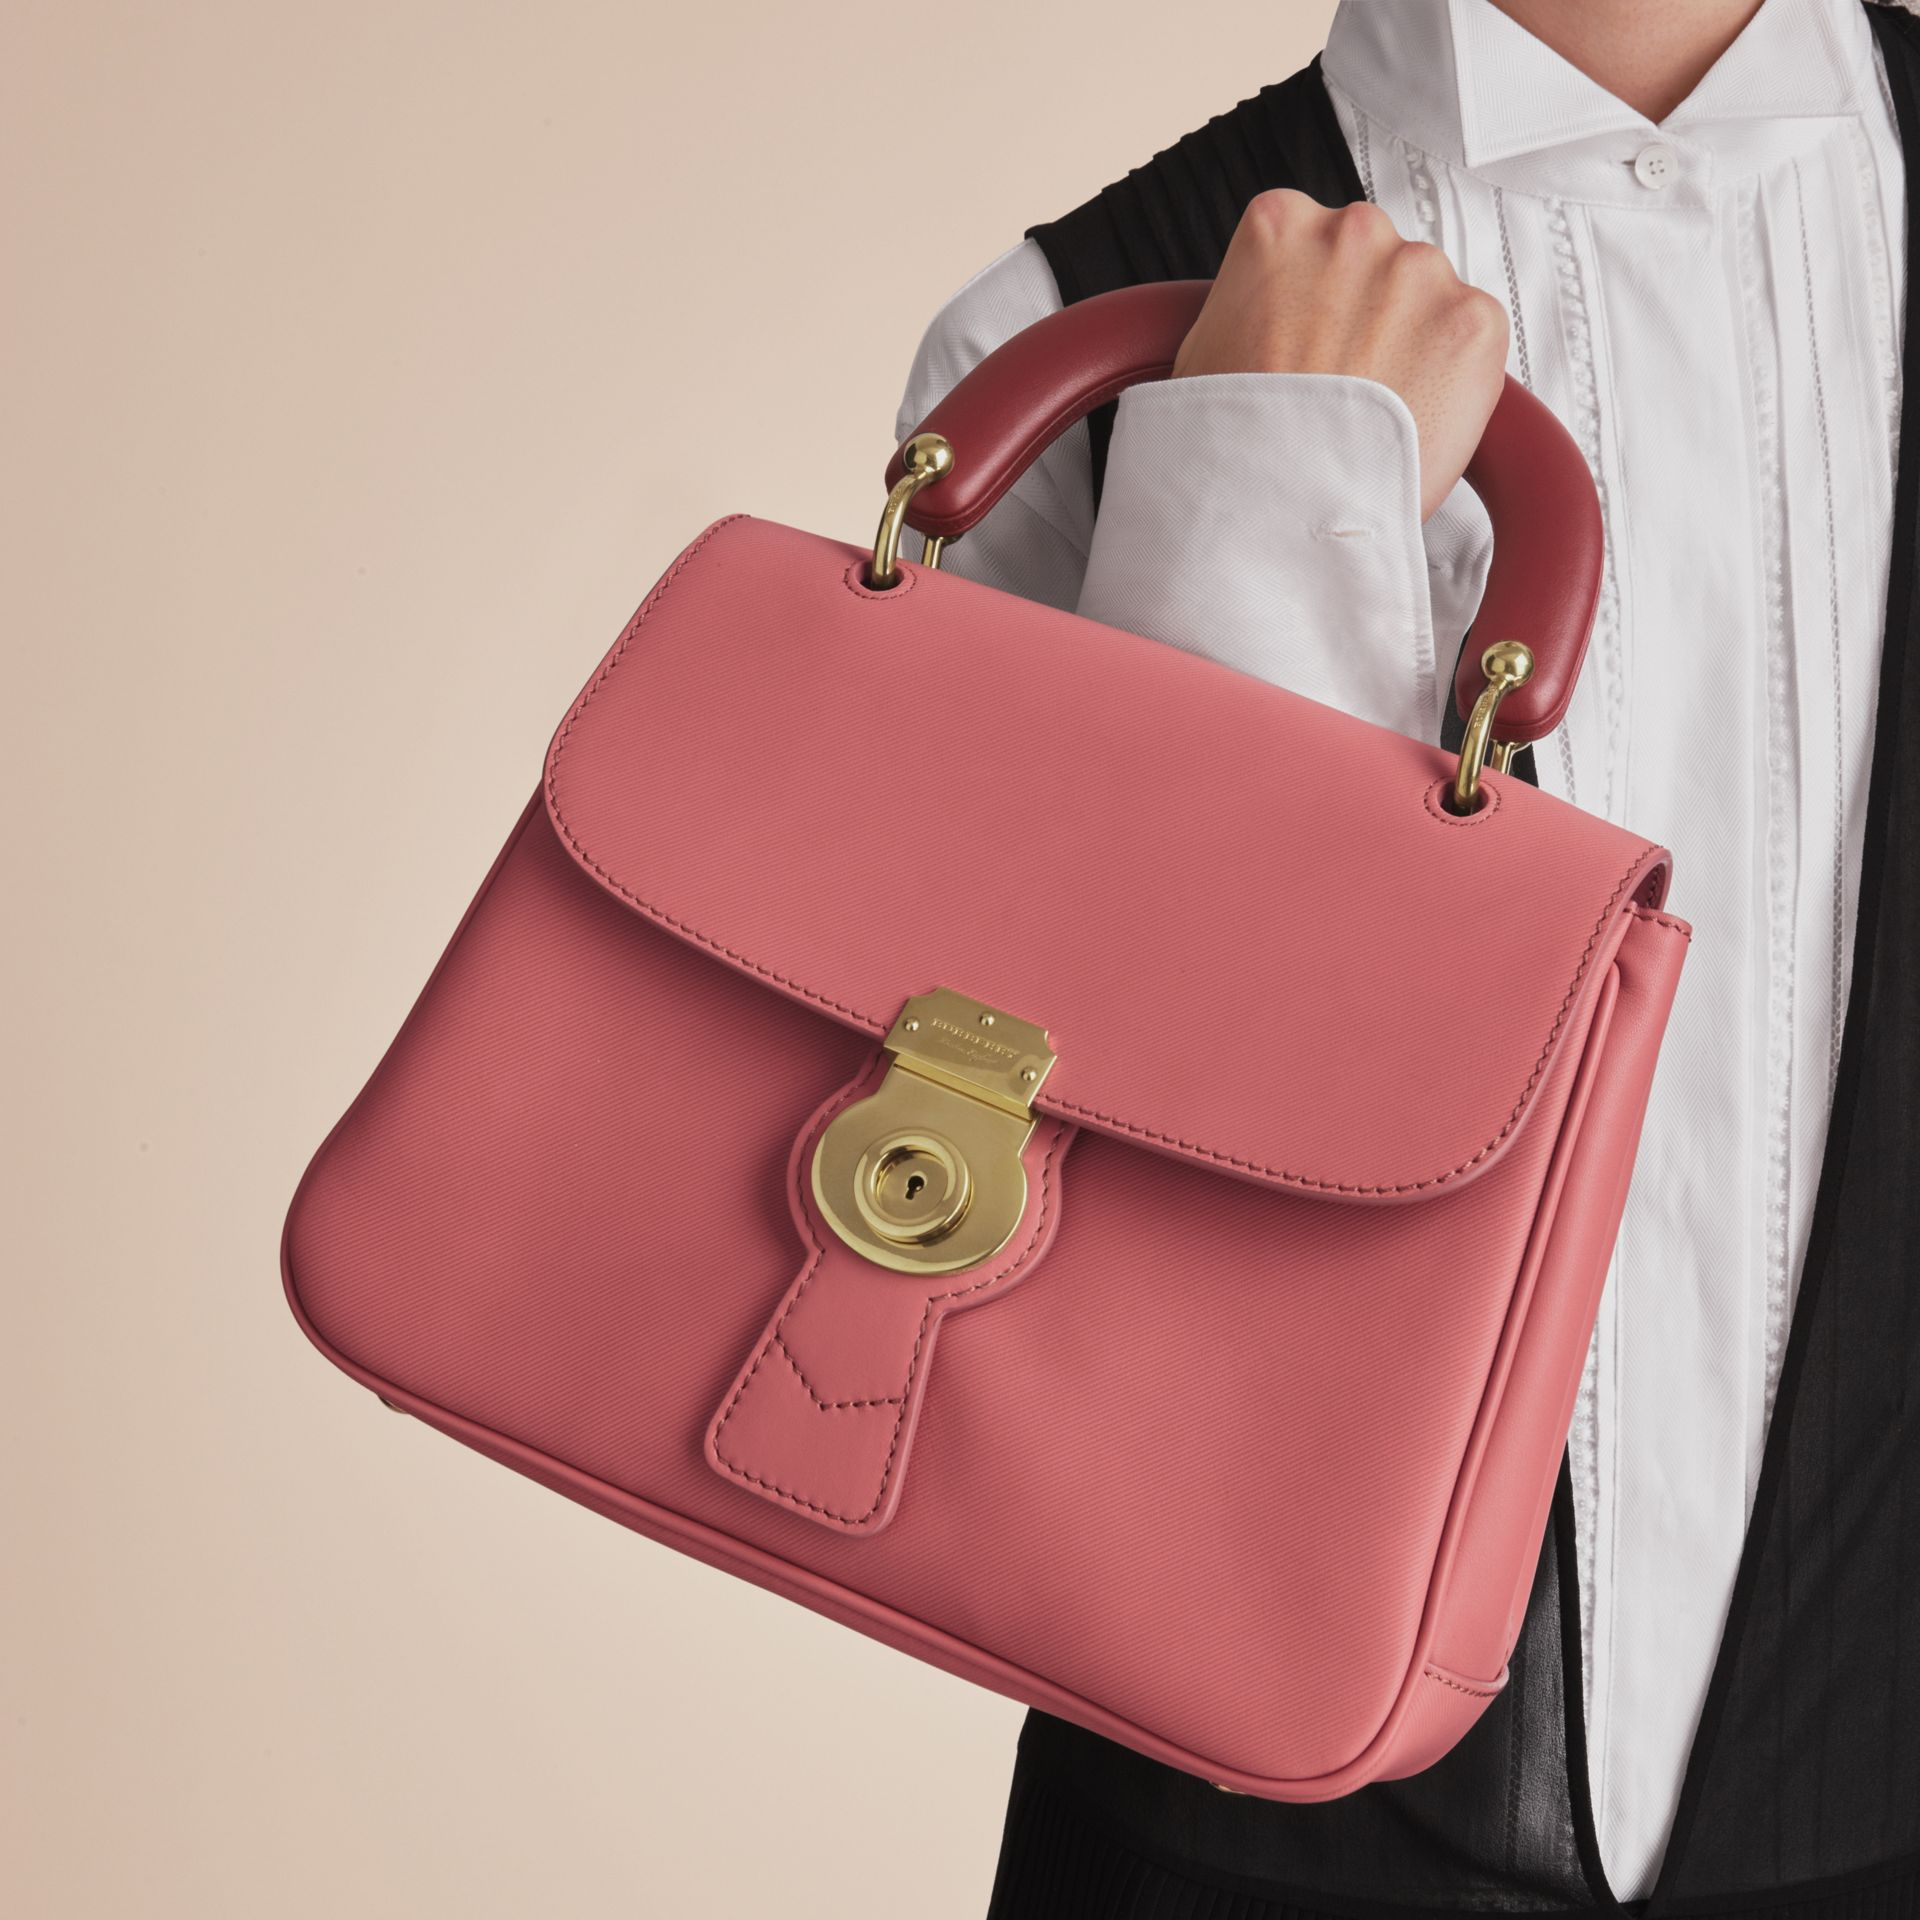 The Medium DK88 Top Handle Bag in Blossom Pink - Women | Burberry Canada - gallery image 5